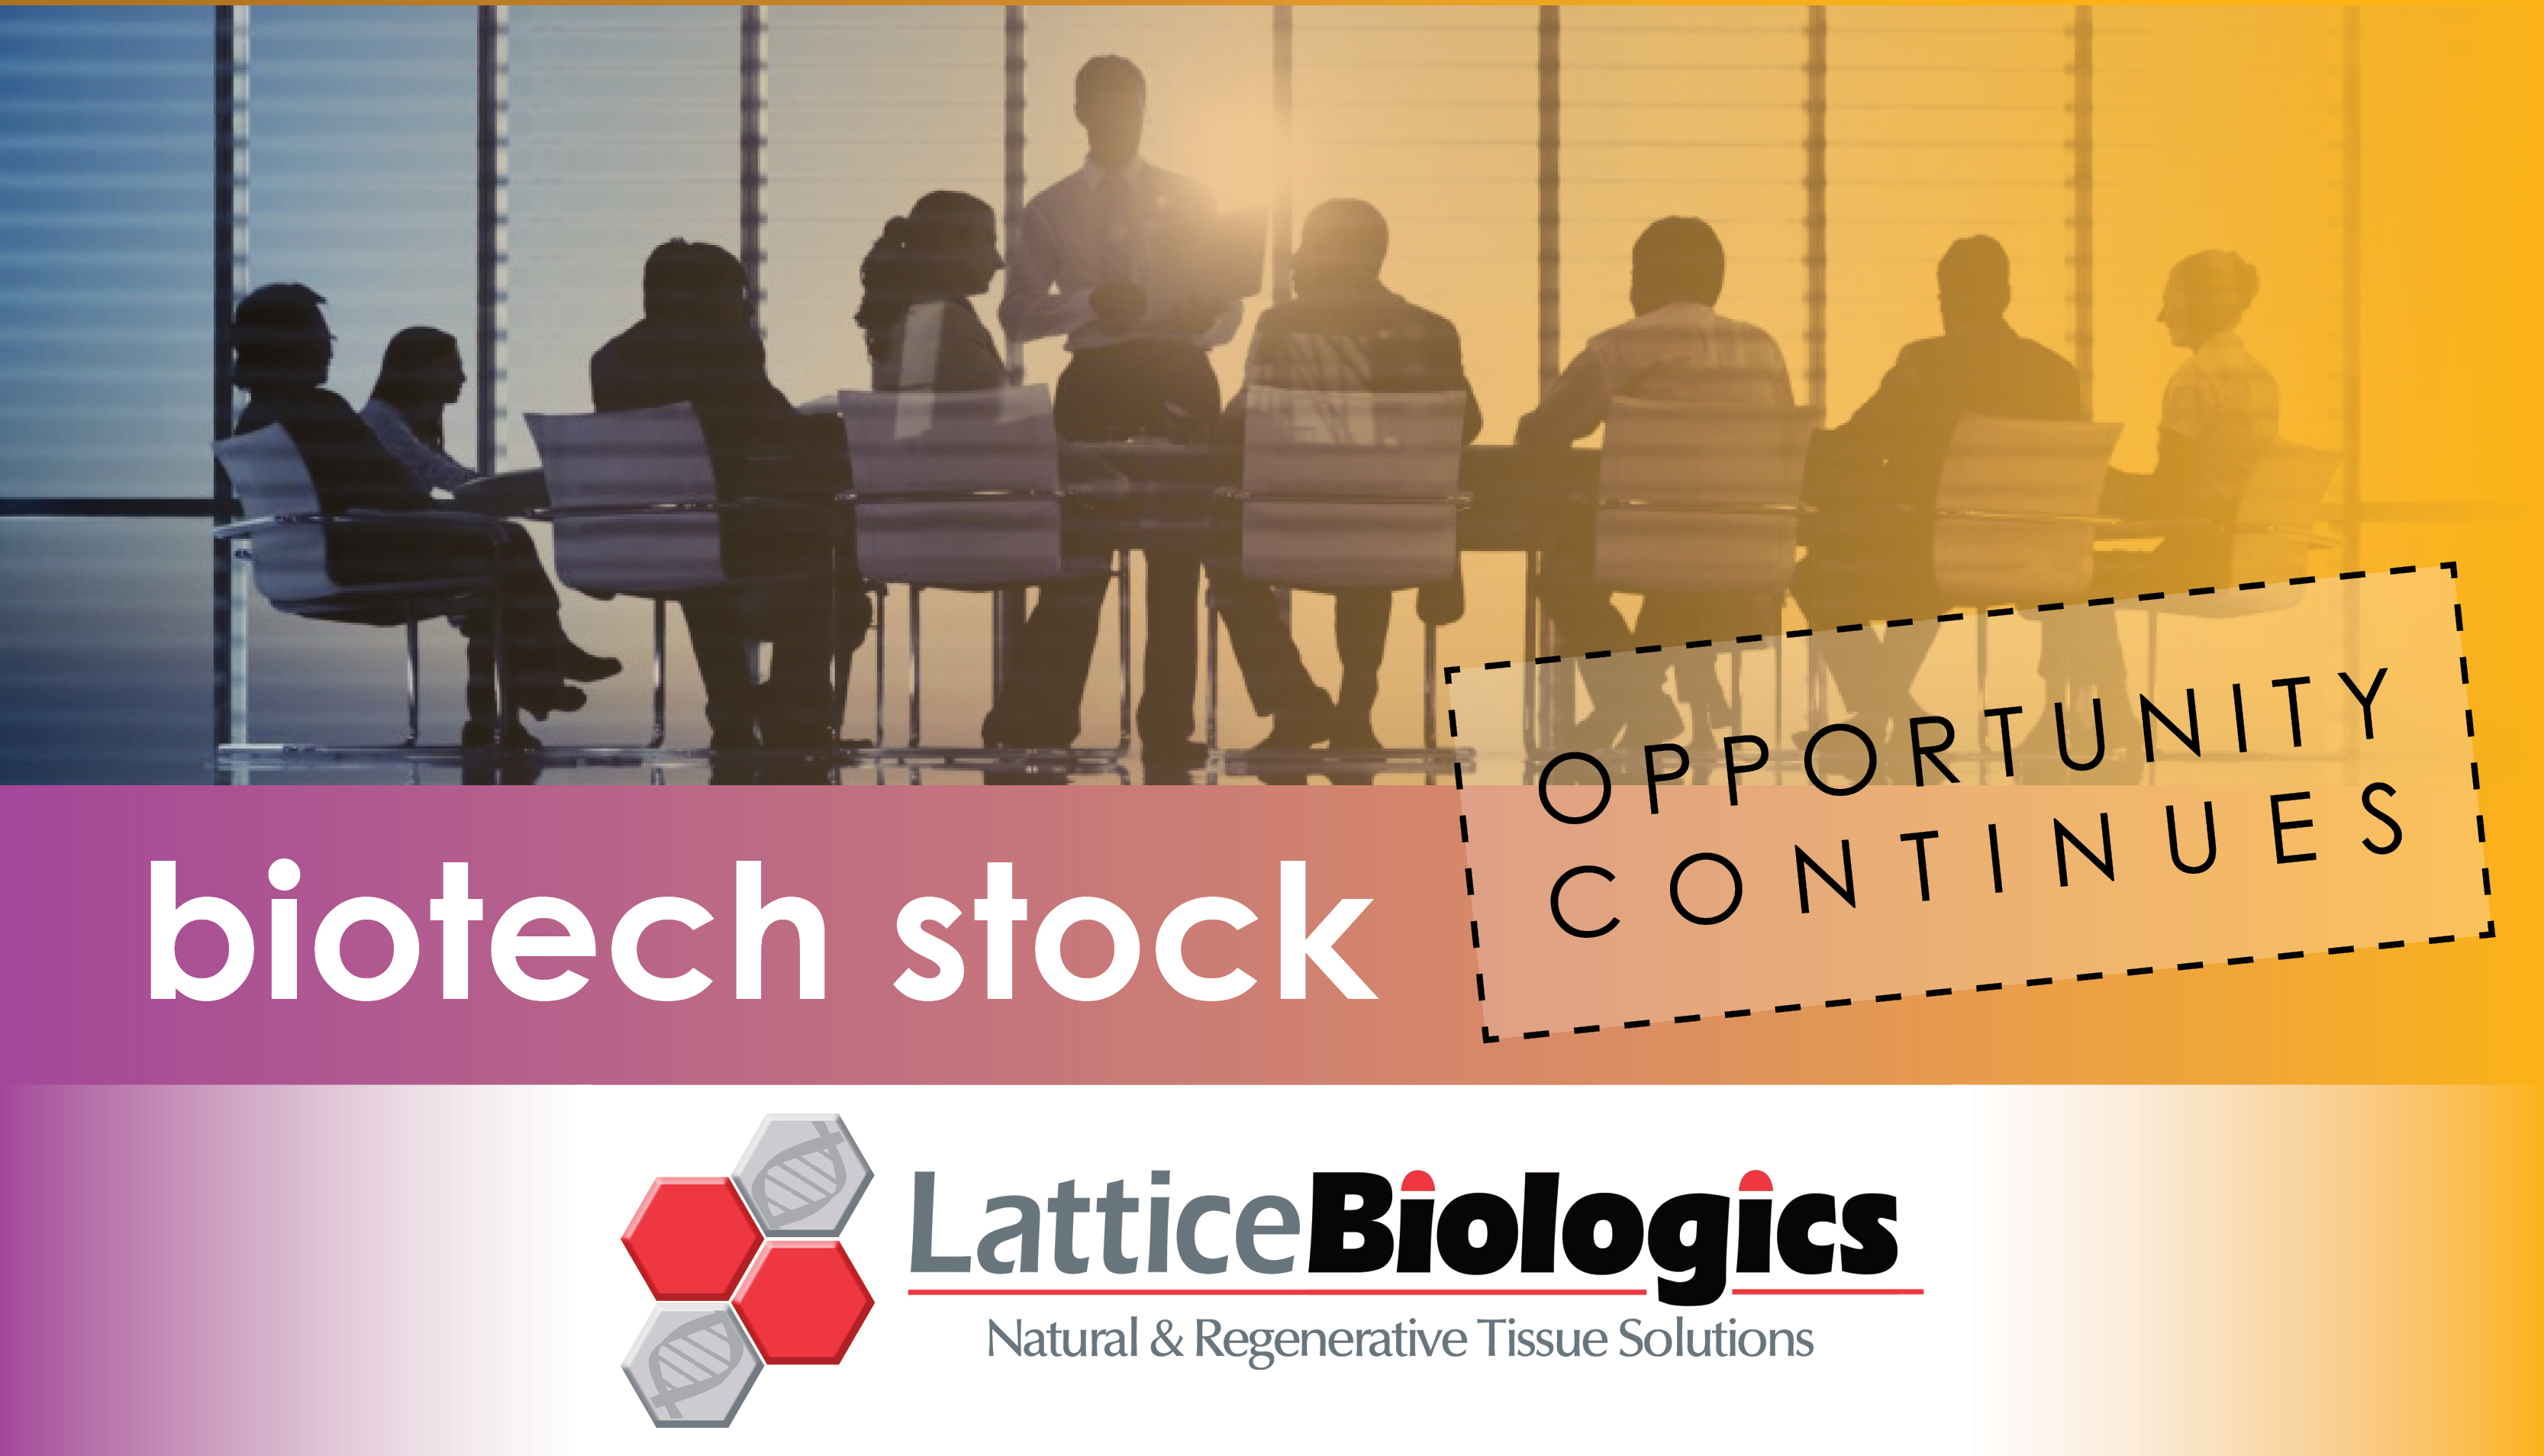 biotech stock opportunity continues with Lattice Biologics